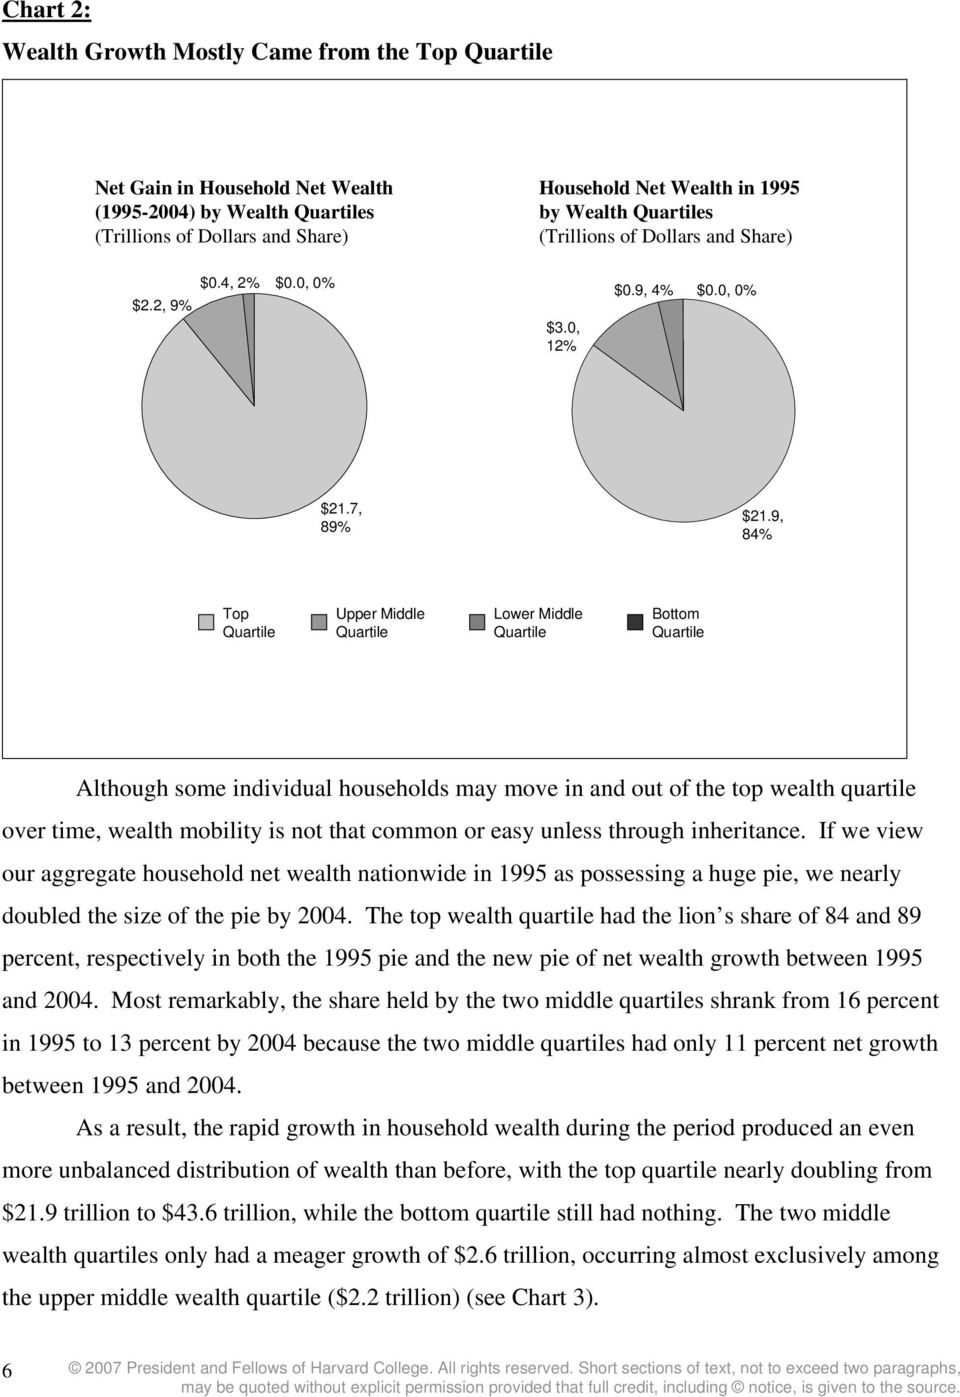 9, 84% Top Upper Middle Lower Middle Bottom Although some individual households may move in and out of the top wealth quartile over time, wealth mobility is not that common or easy unless through